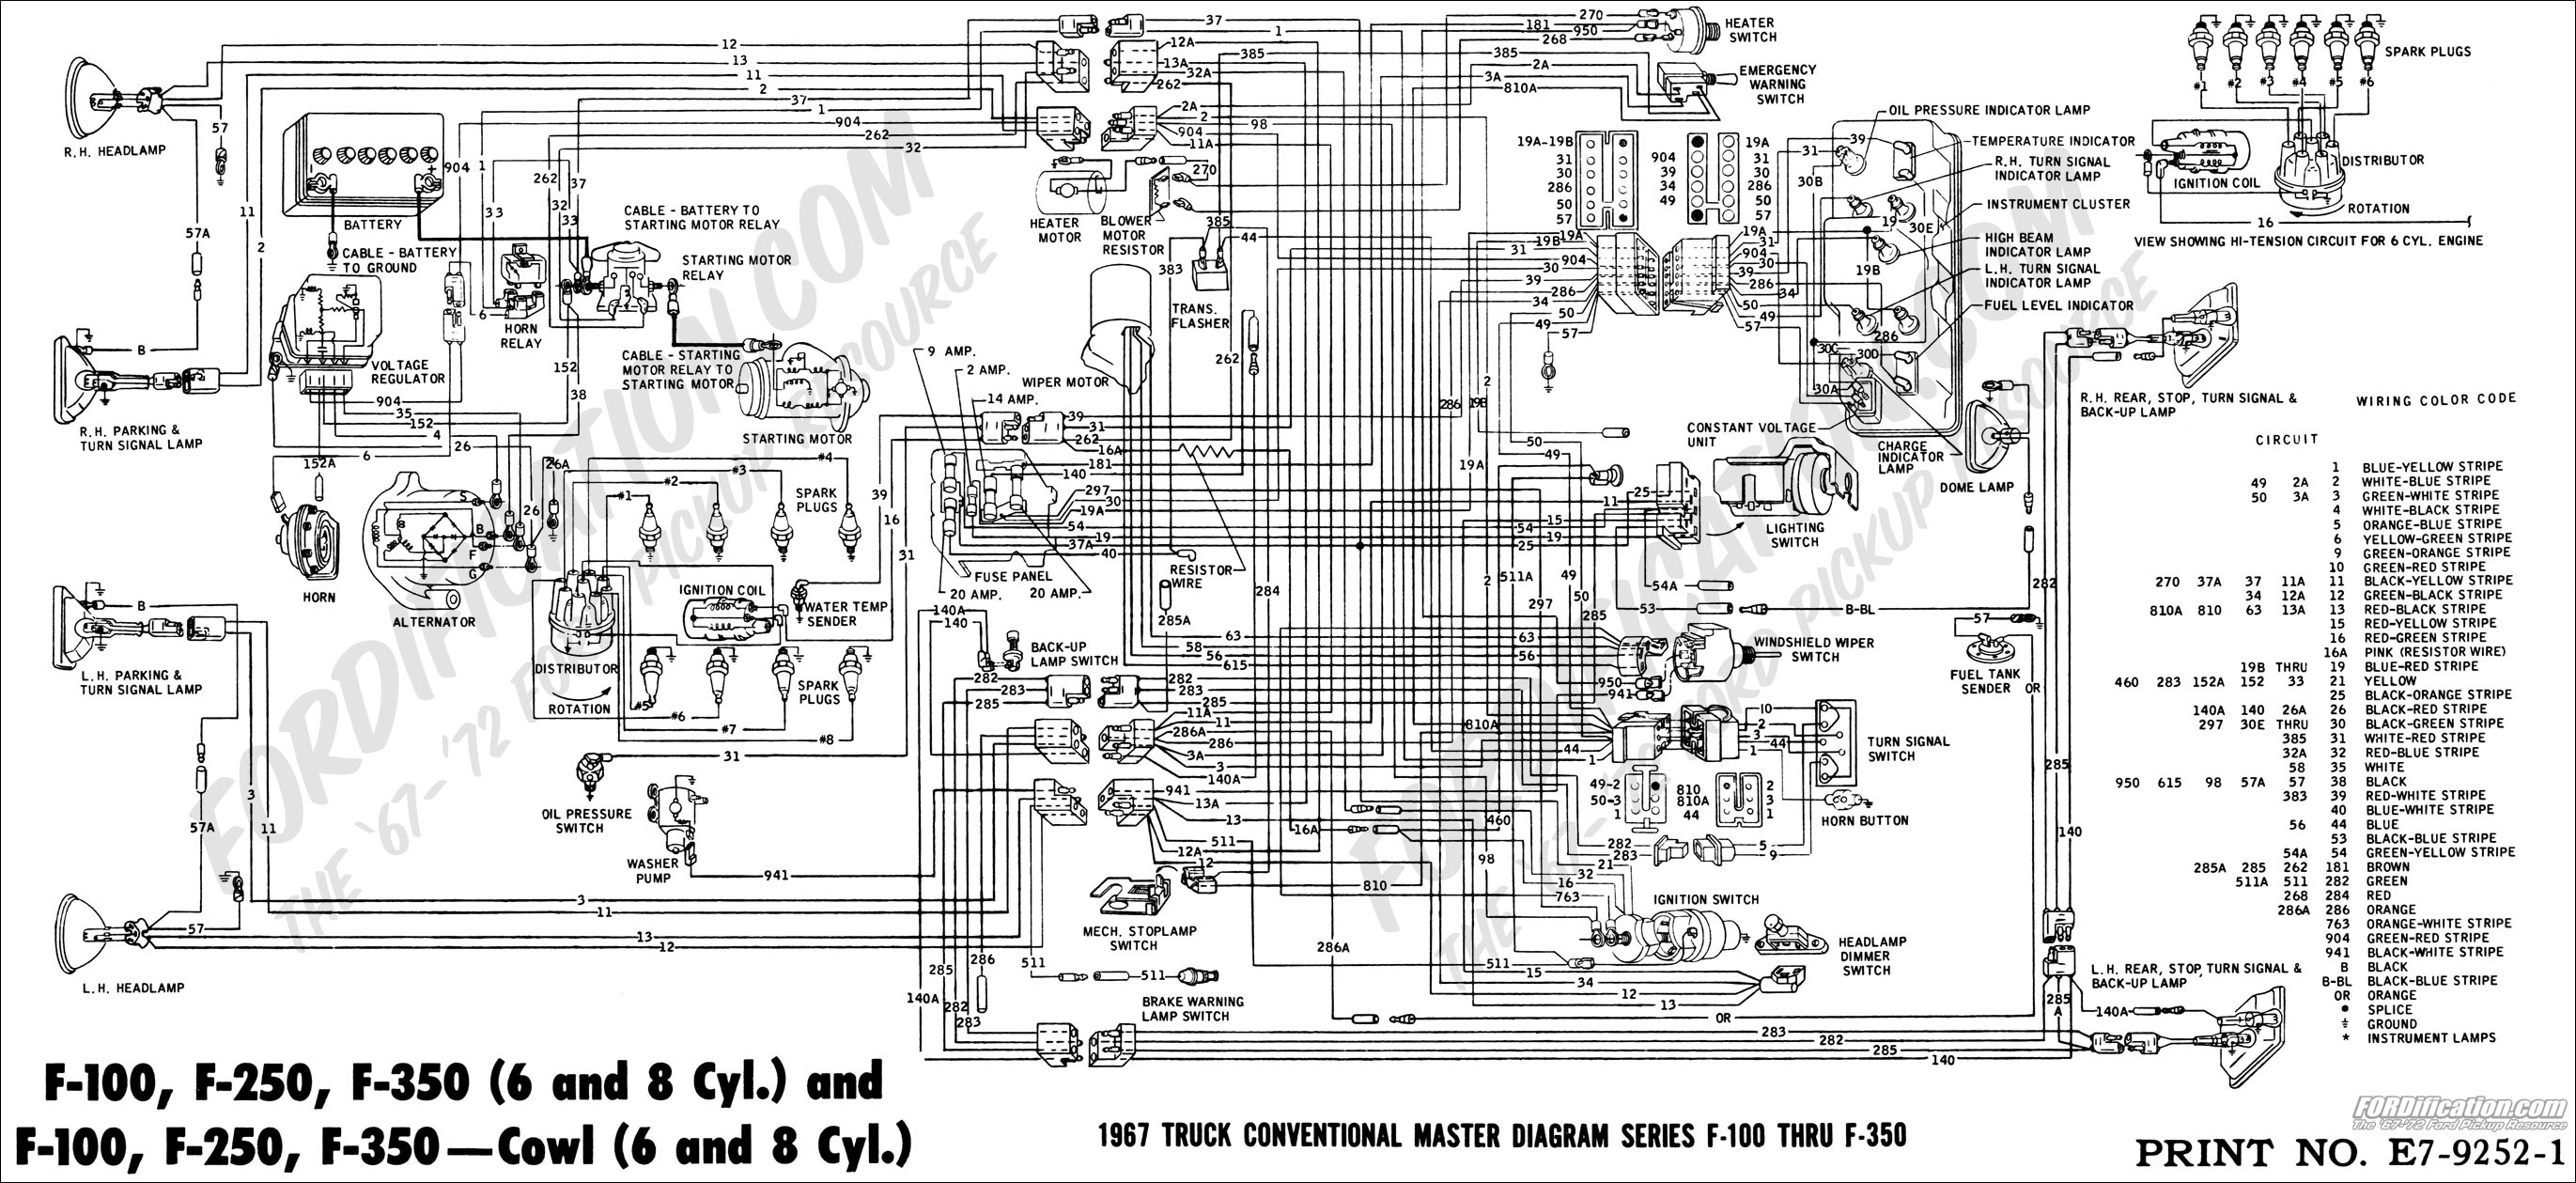 93 Mustang Wiring Diagram ford Truck Technical Drawings and Schematics Section H Wiring Of 93 Mustang Wiring Diagram